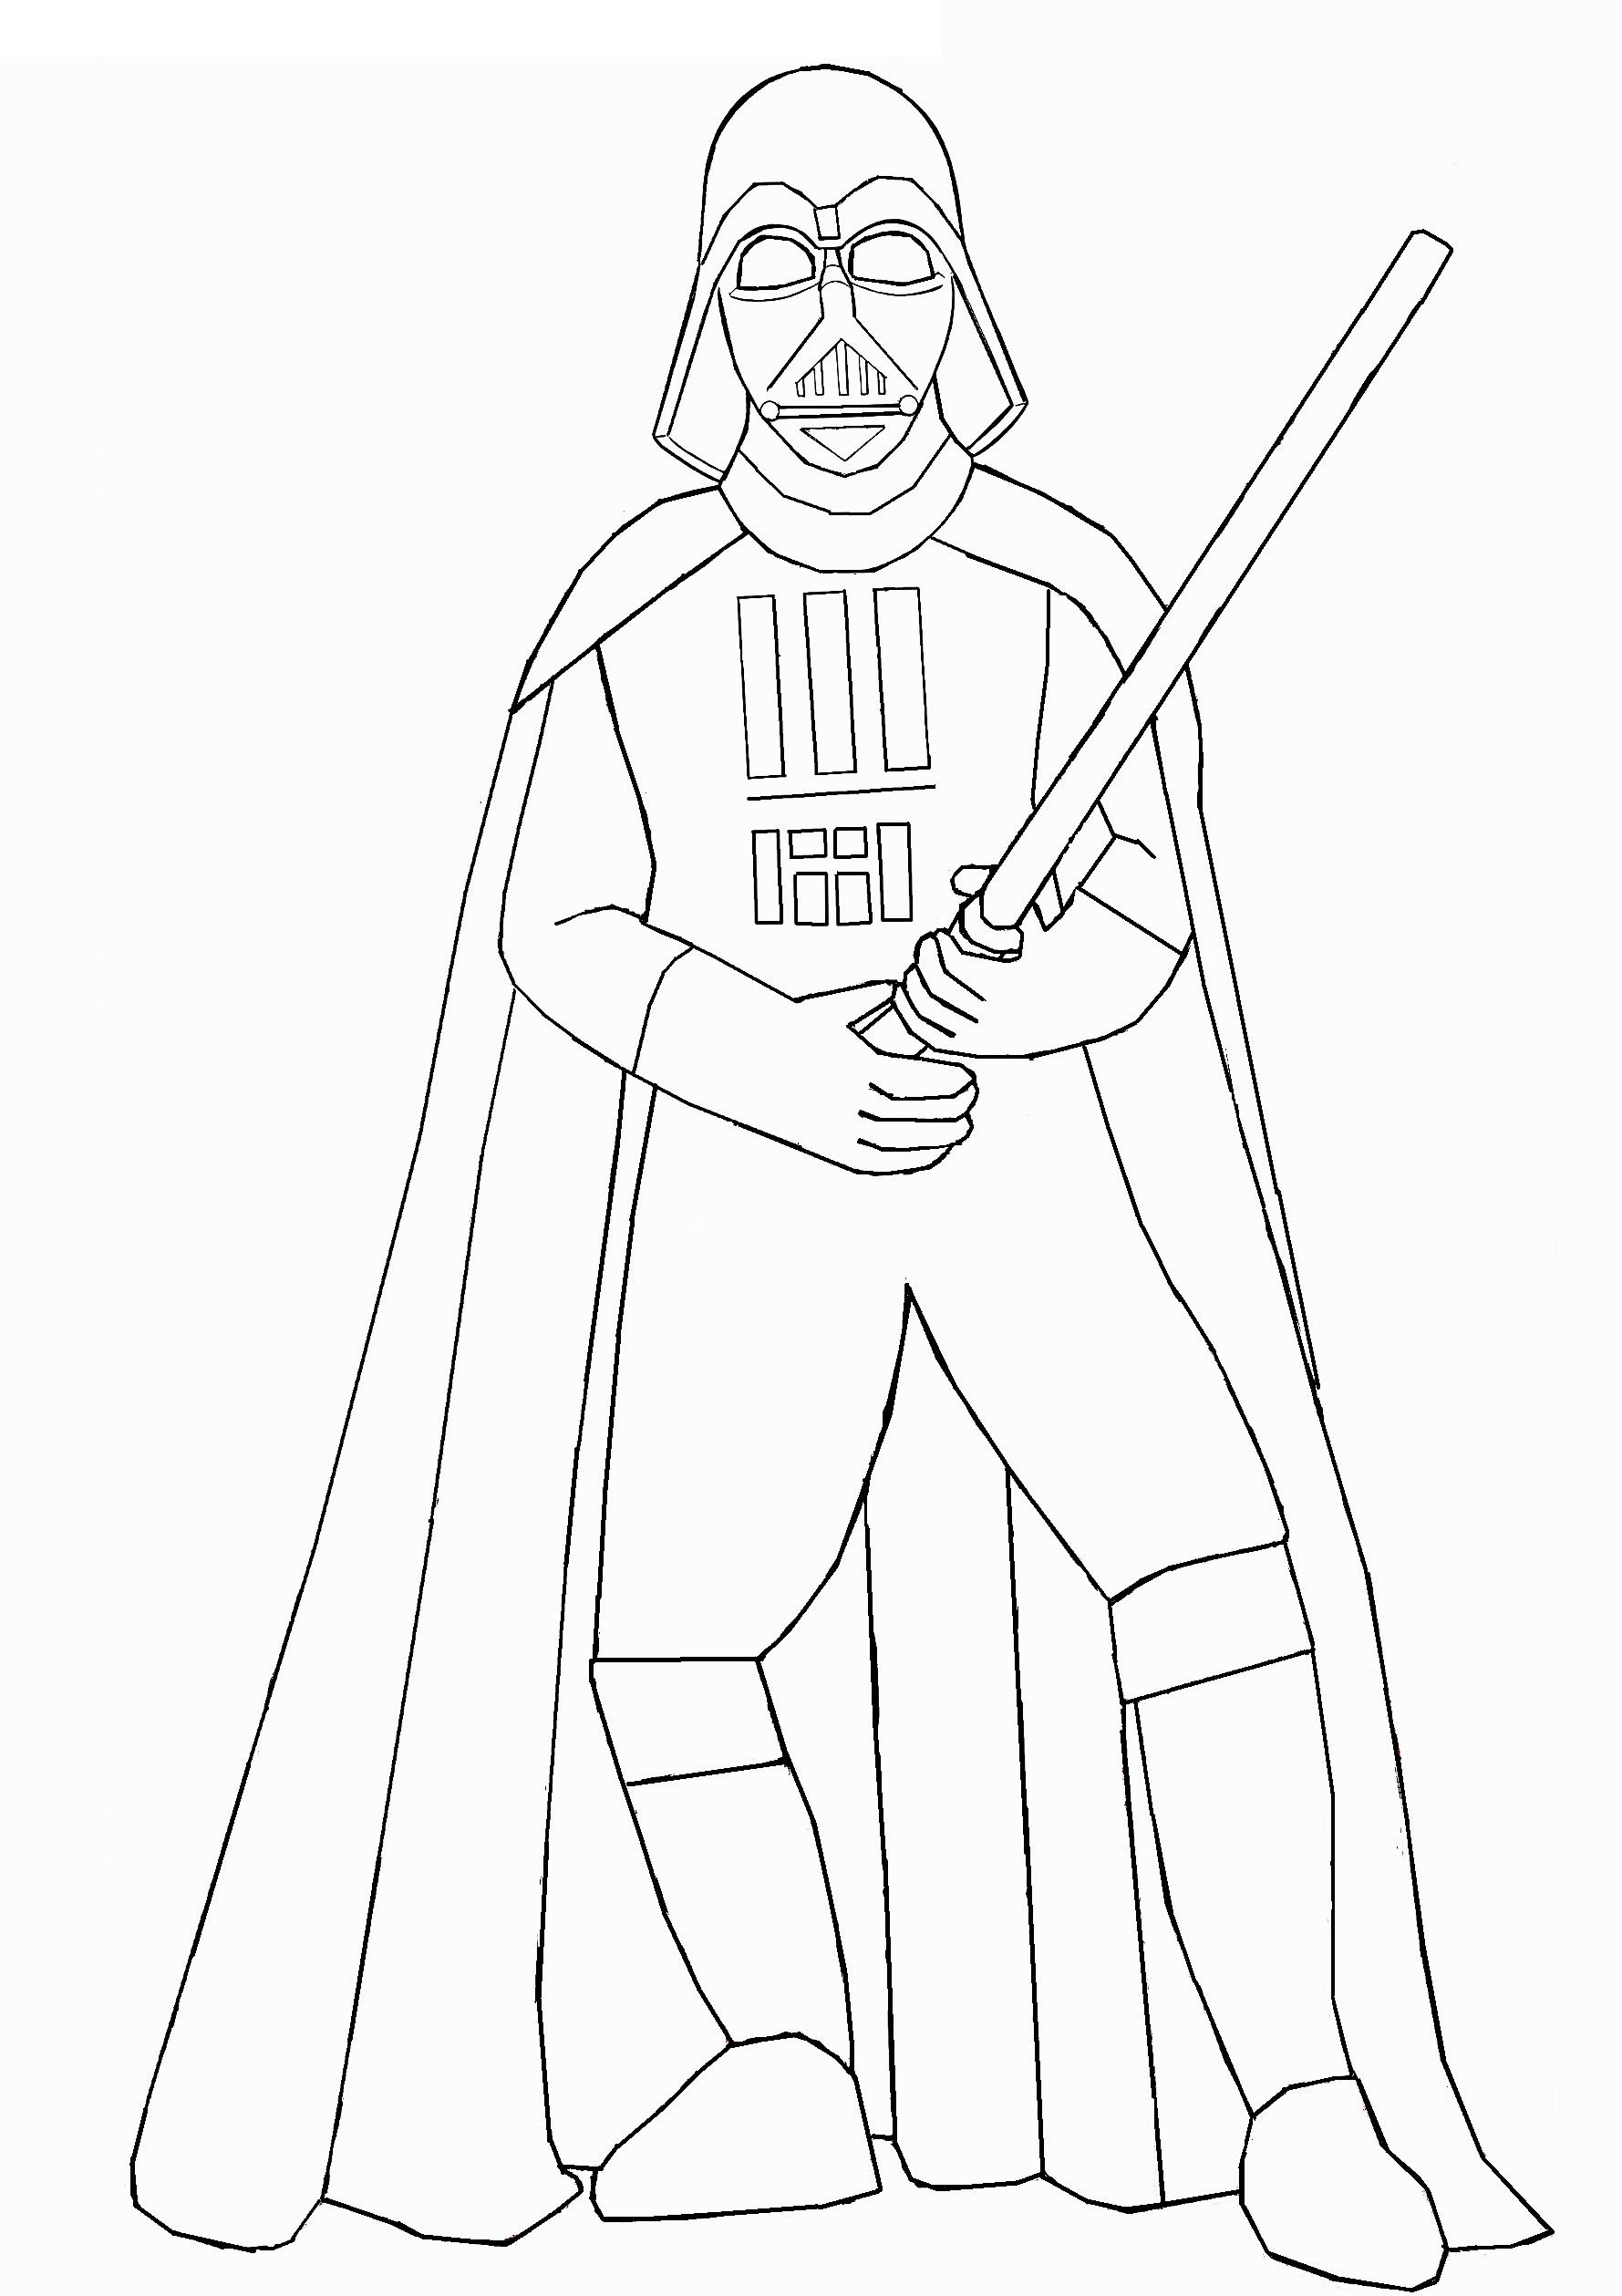 star wars coloring pages darth vader darth vader coloring pages to download and print for free pages coloring darth vader wars star